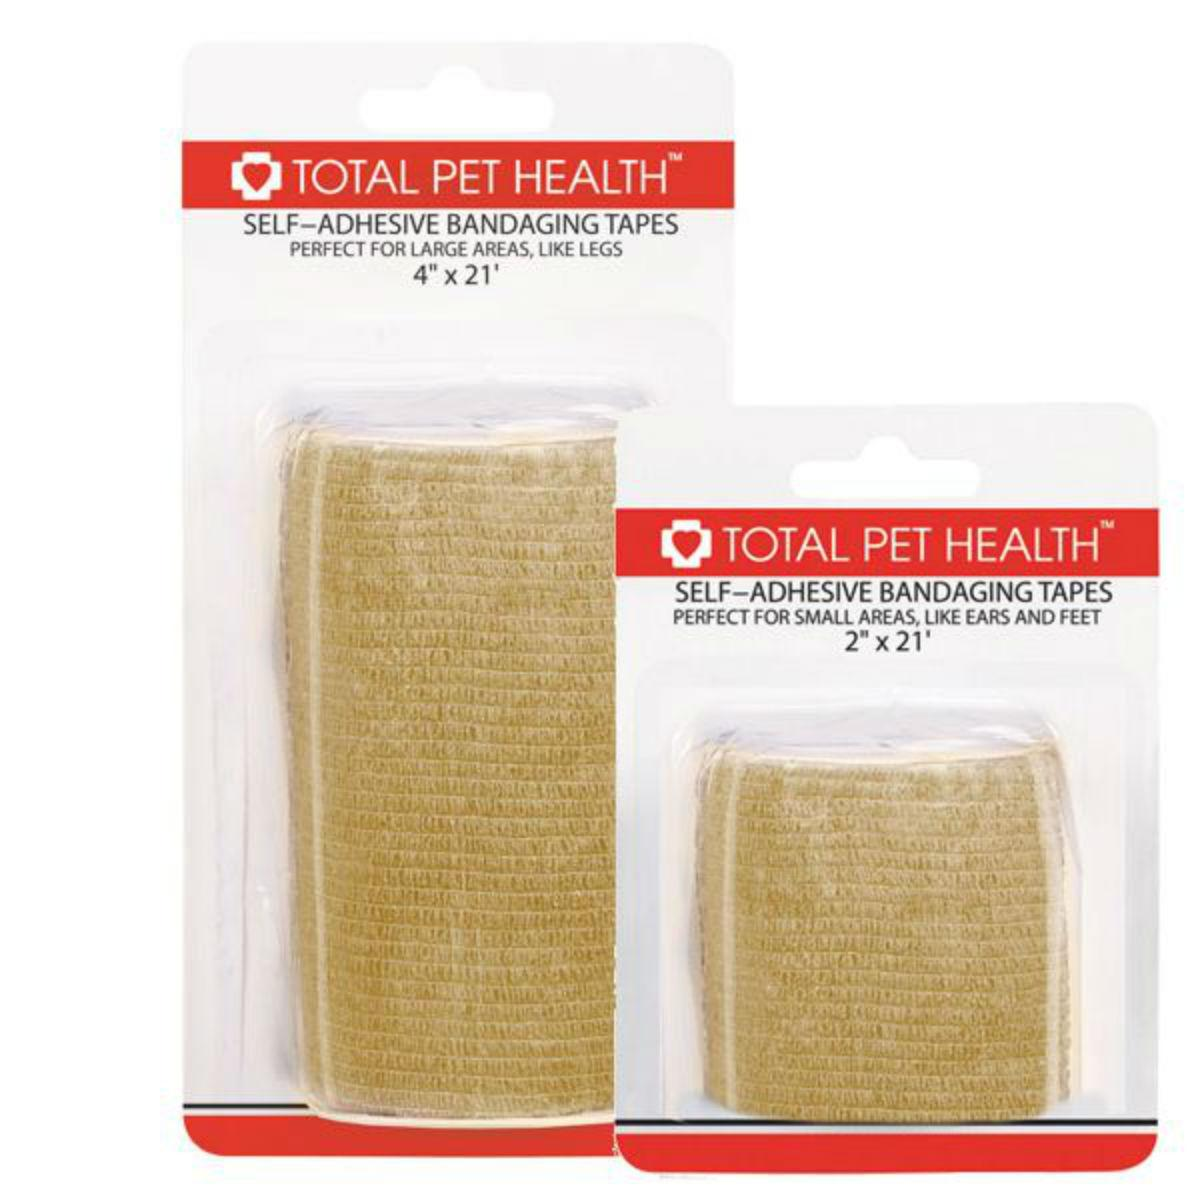 Total Pet Health Bandaging Tapes for Dogs and Cats